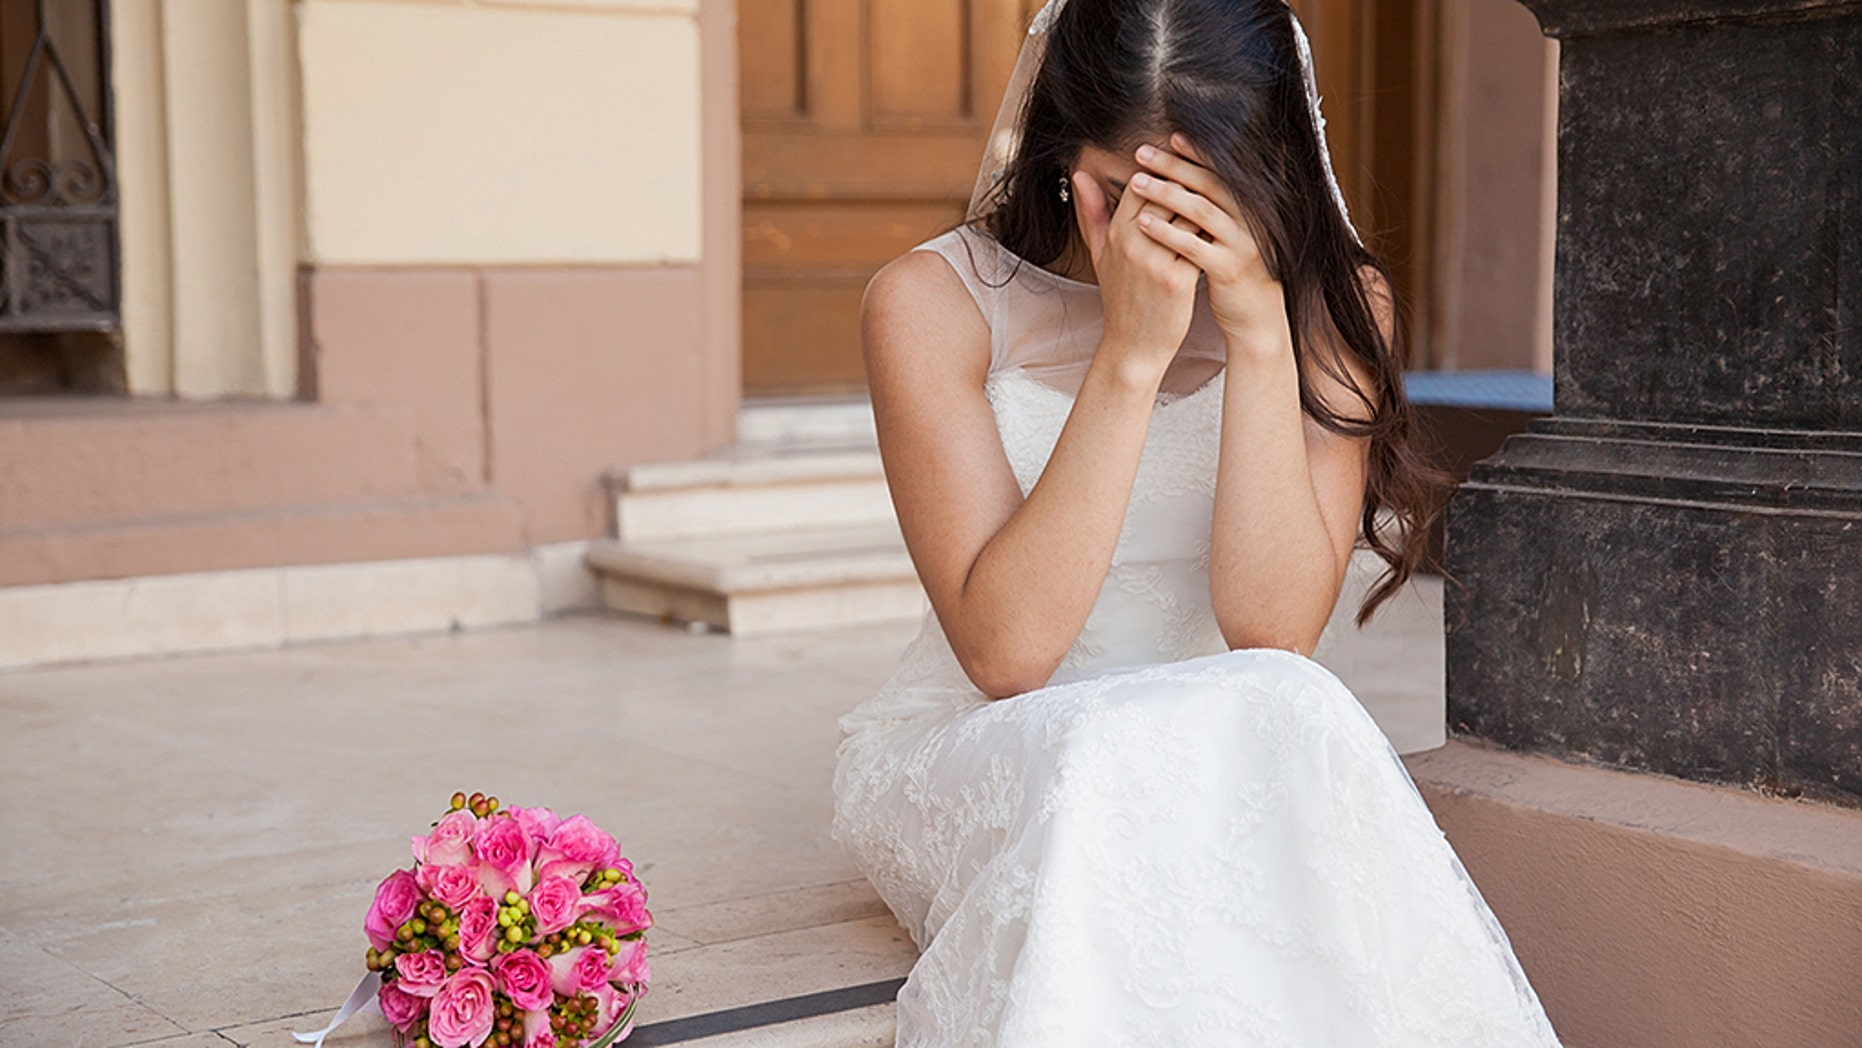 A woman claimed she was tricked into marrying a stranger in a mock wedding.